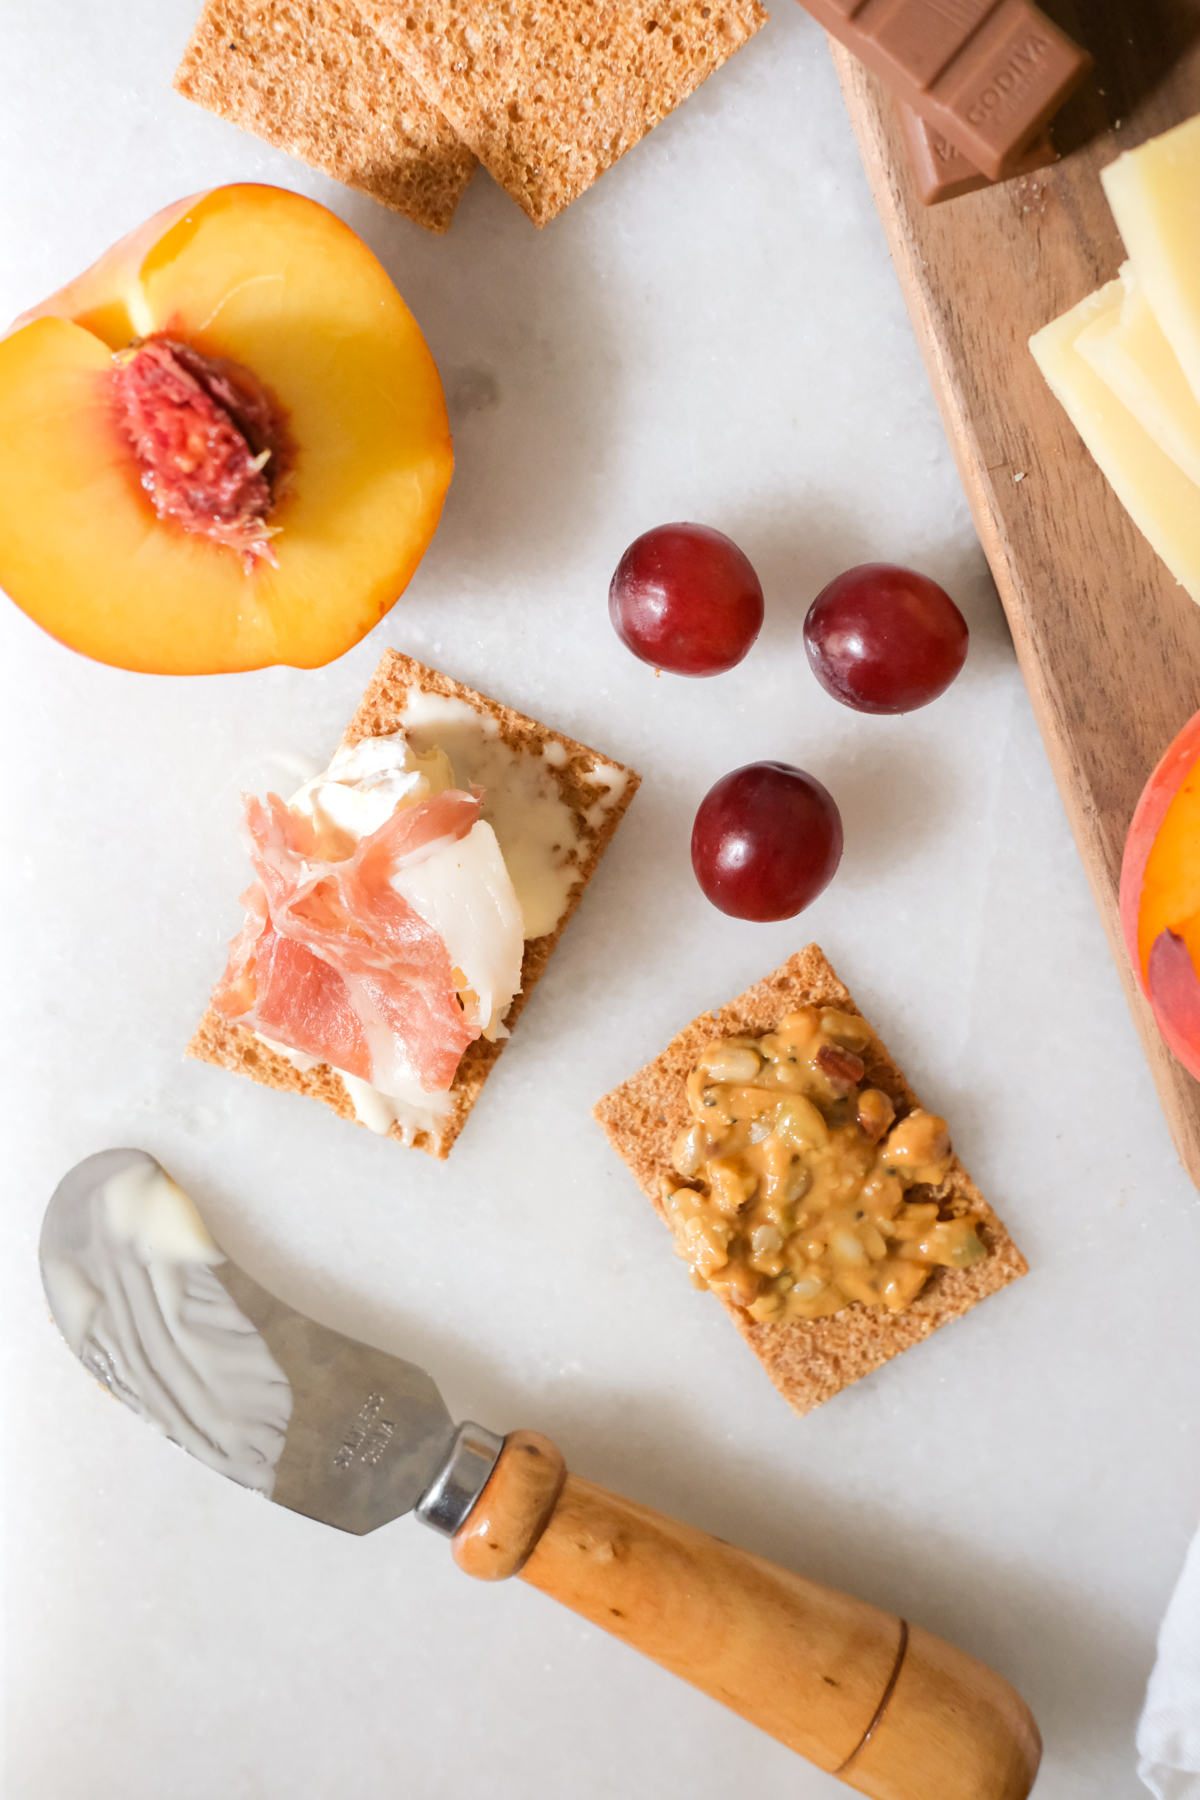 crispbread with cheese and nuts and meat with fruit